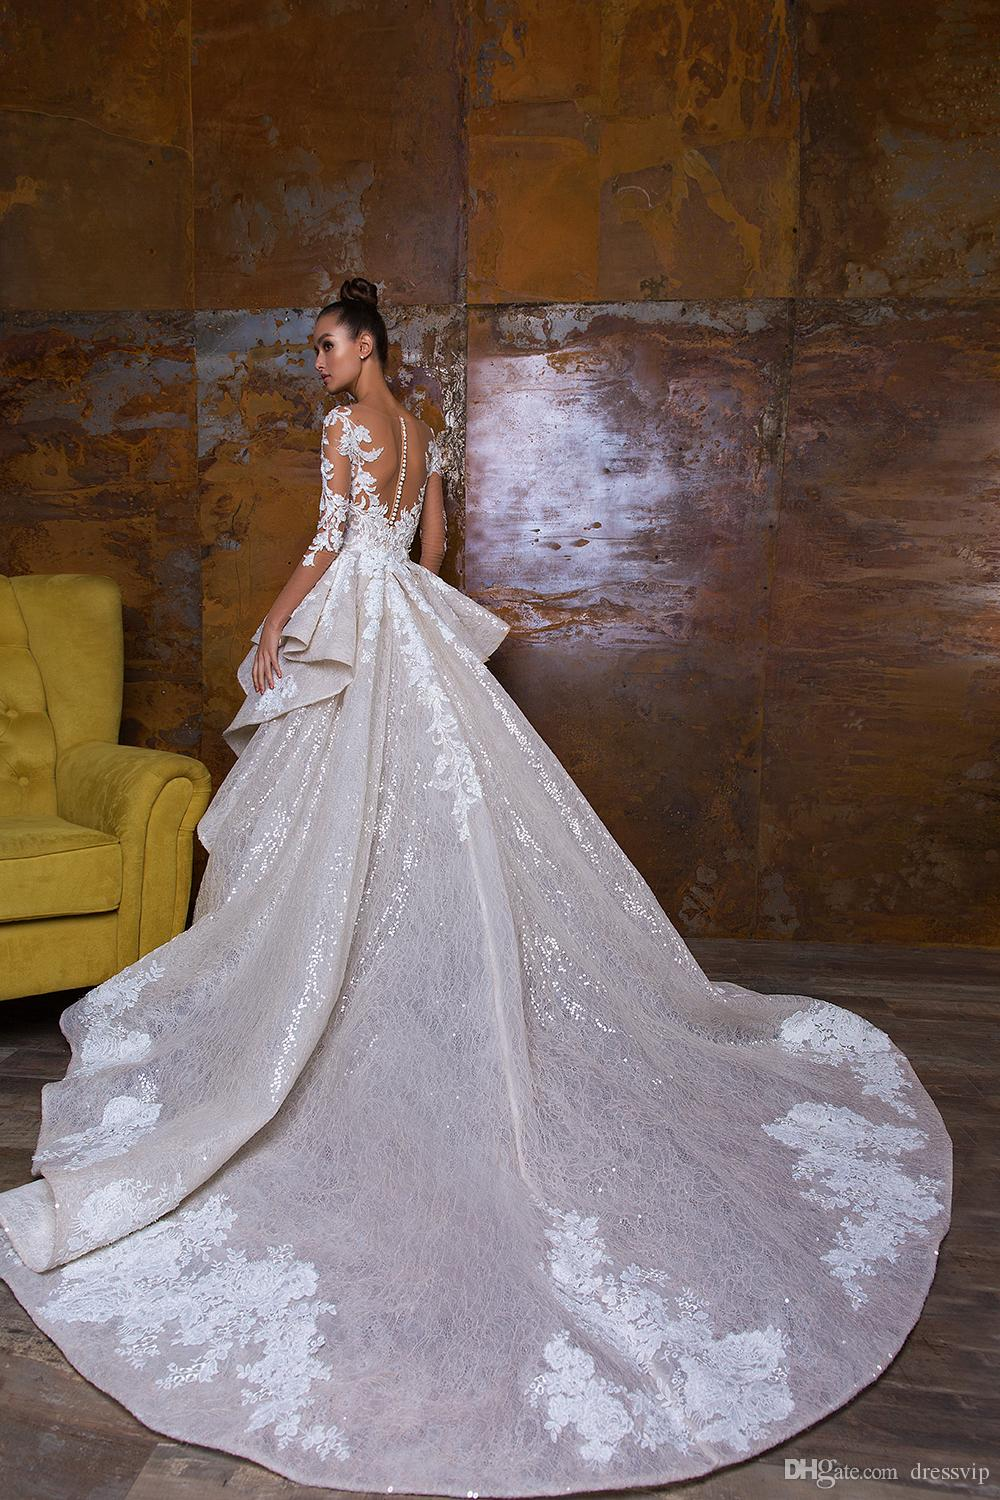 Bohemian Wedding Dresses With Detachable Skirt Sweep Train Lace Applique Sequins Long Sleeve Bridal Dress Luxury Mermaid Wedding Gowns